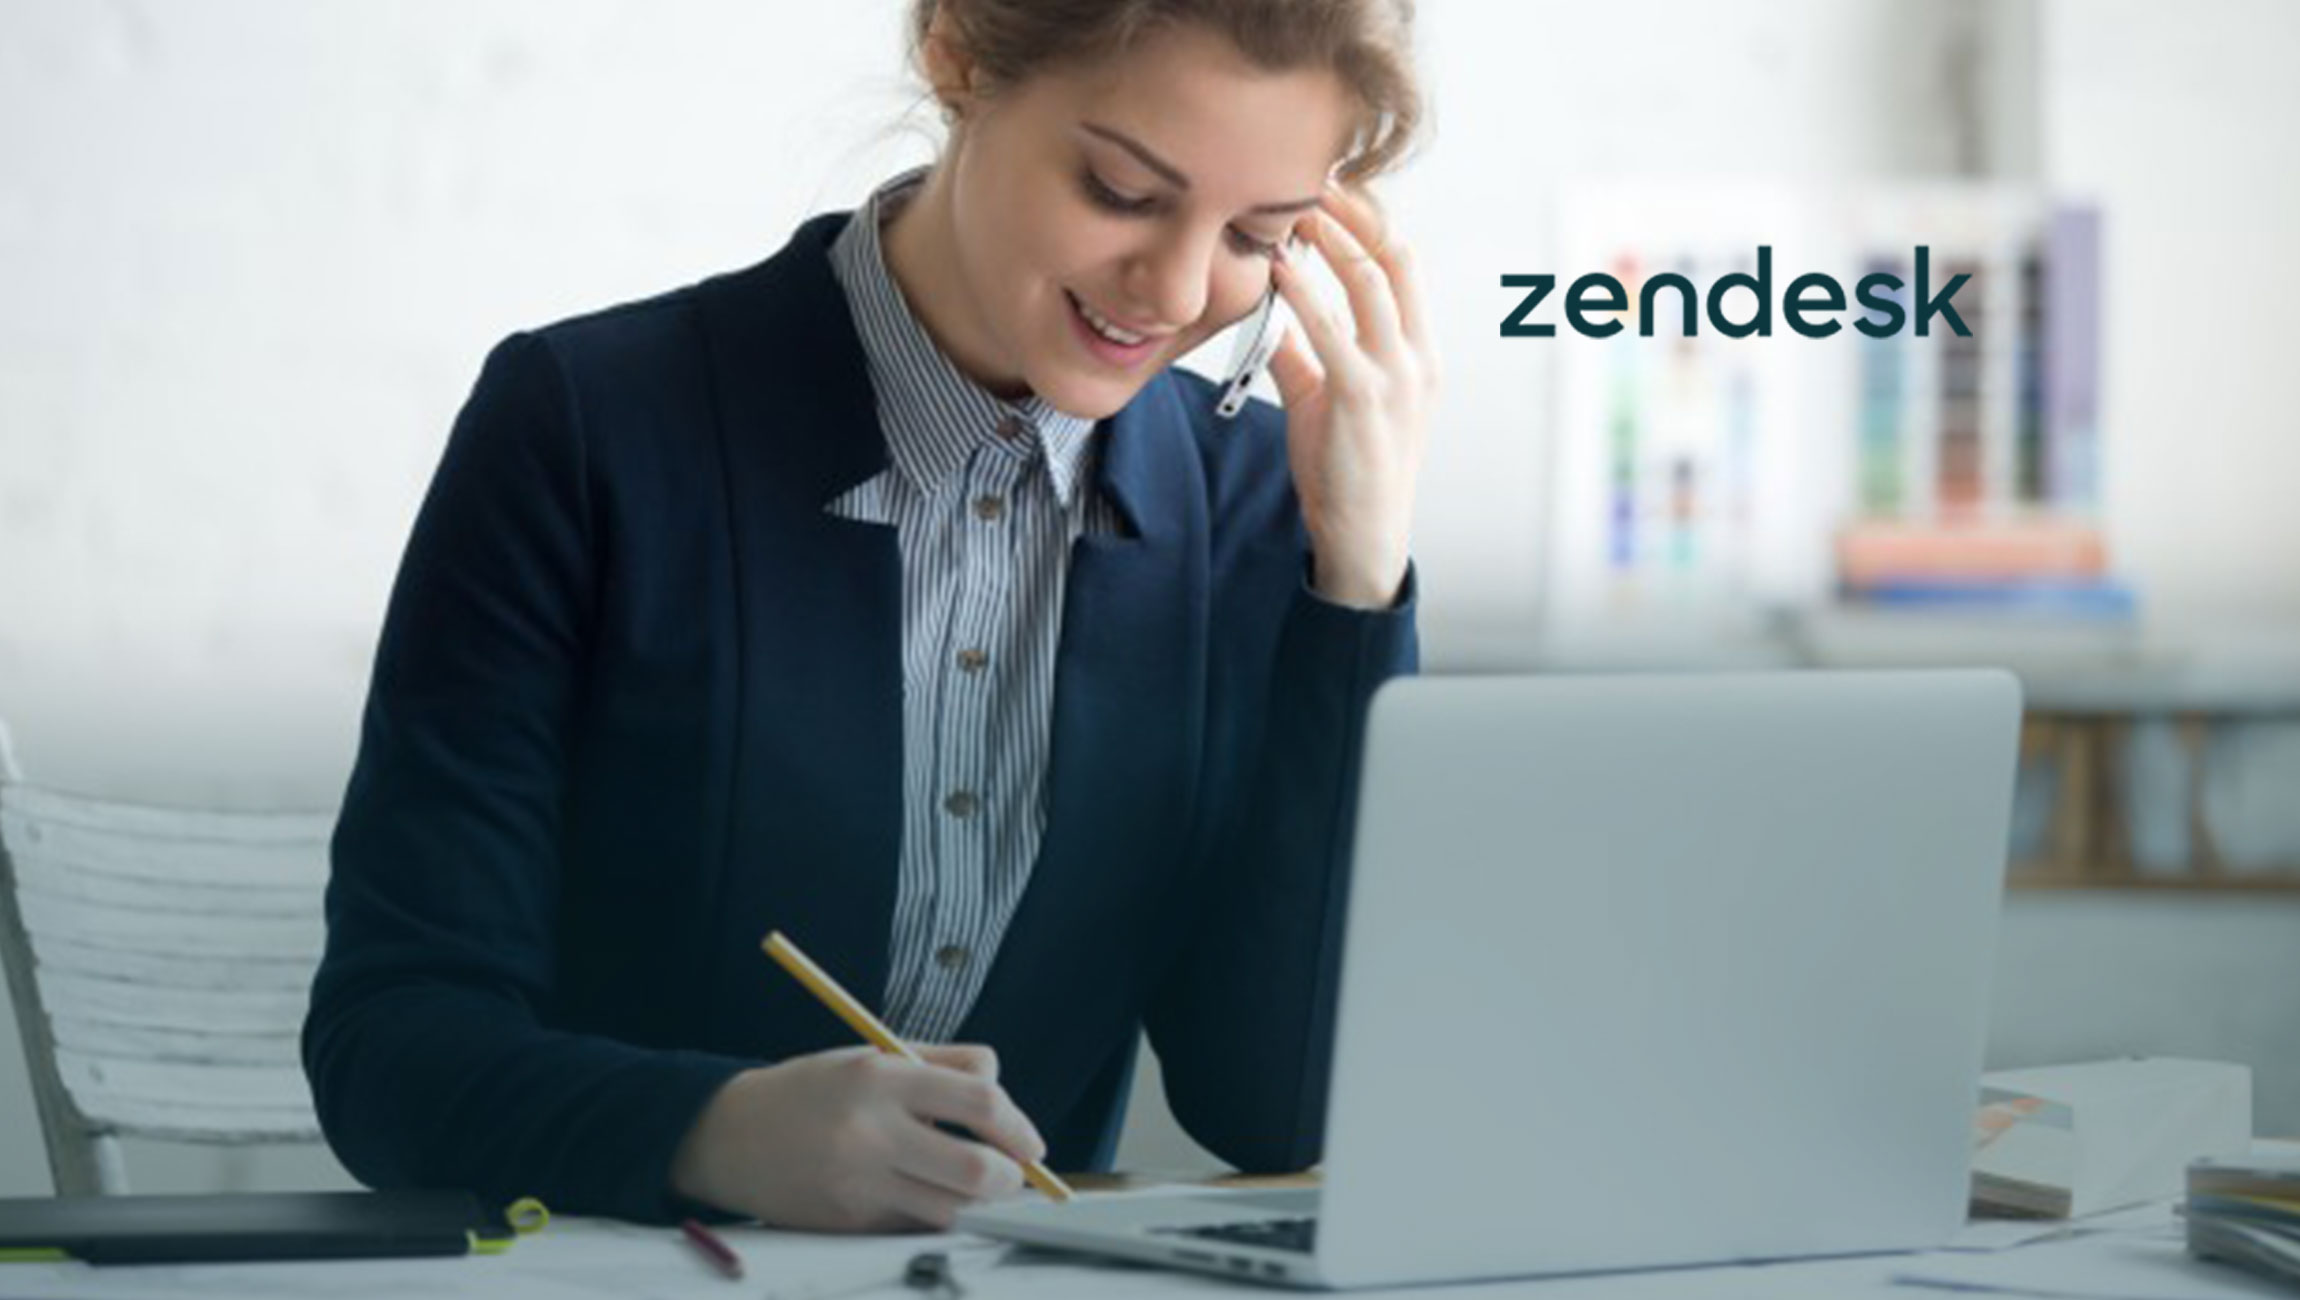 Unbabel And Zendesk Announce Chat Integration To Remove Pain Points In Customer Service